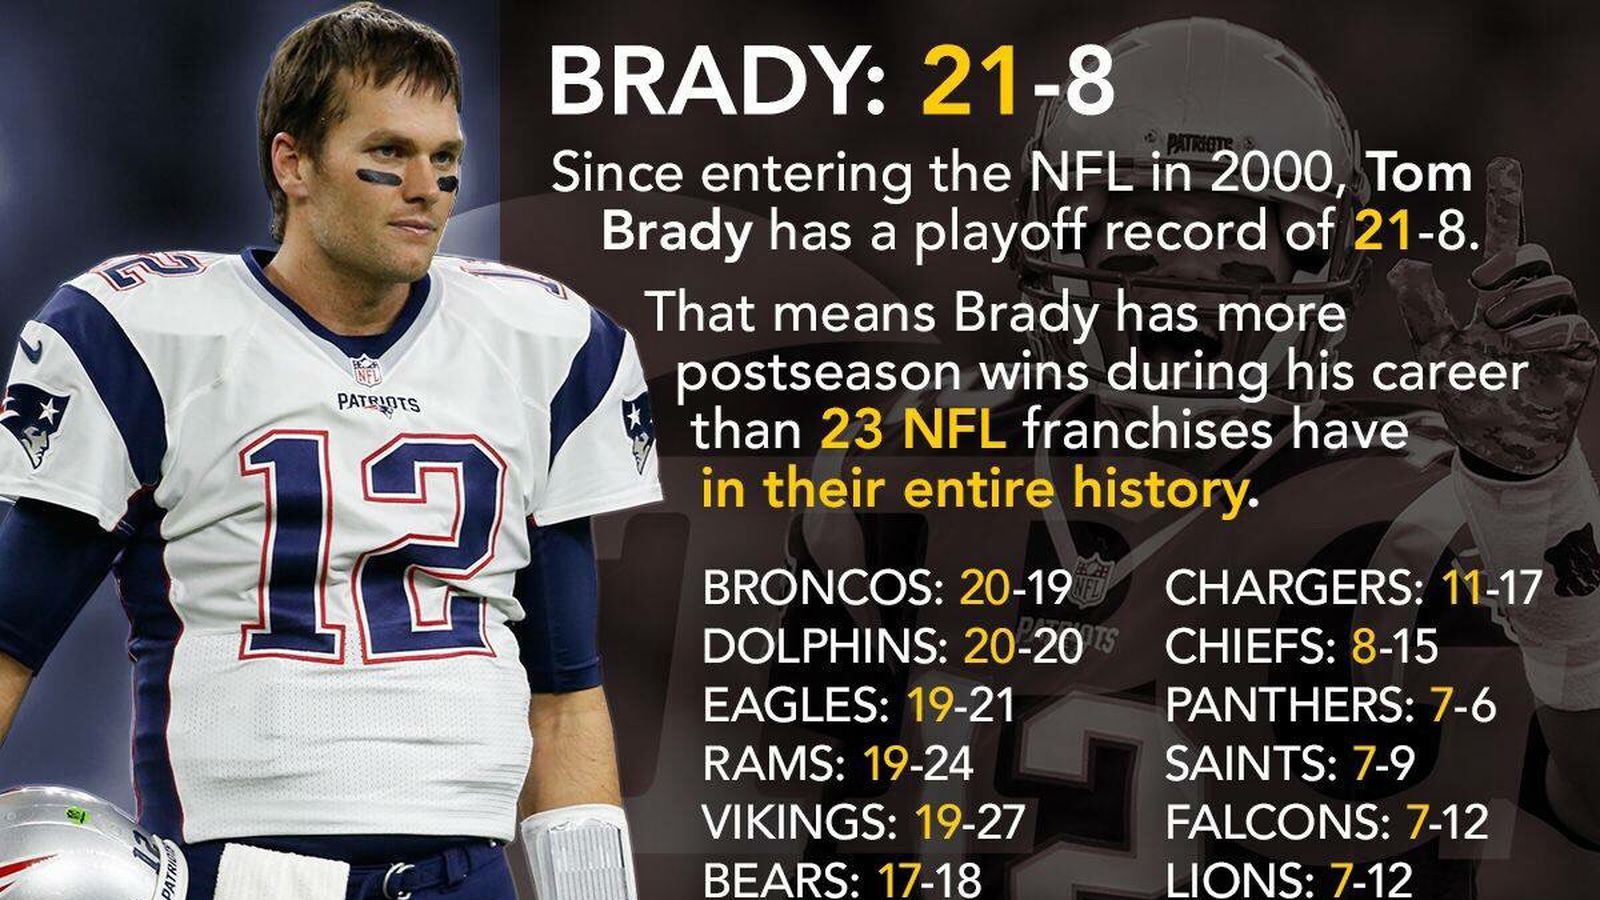 what nfl team does tom brady play for